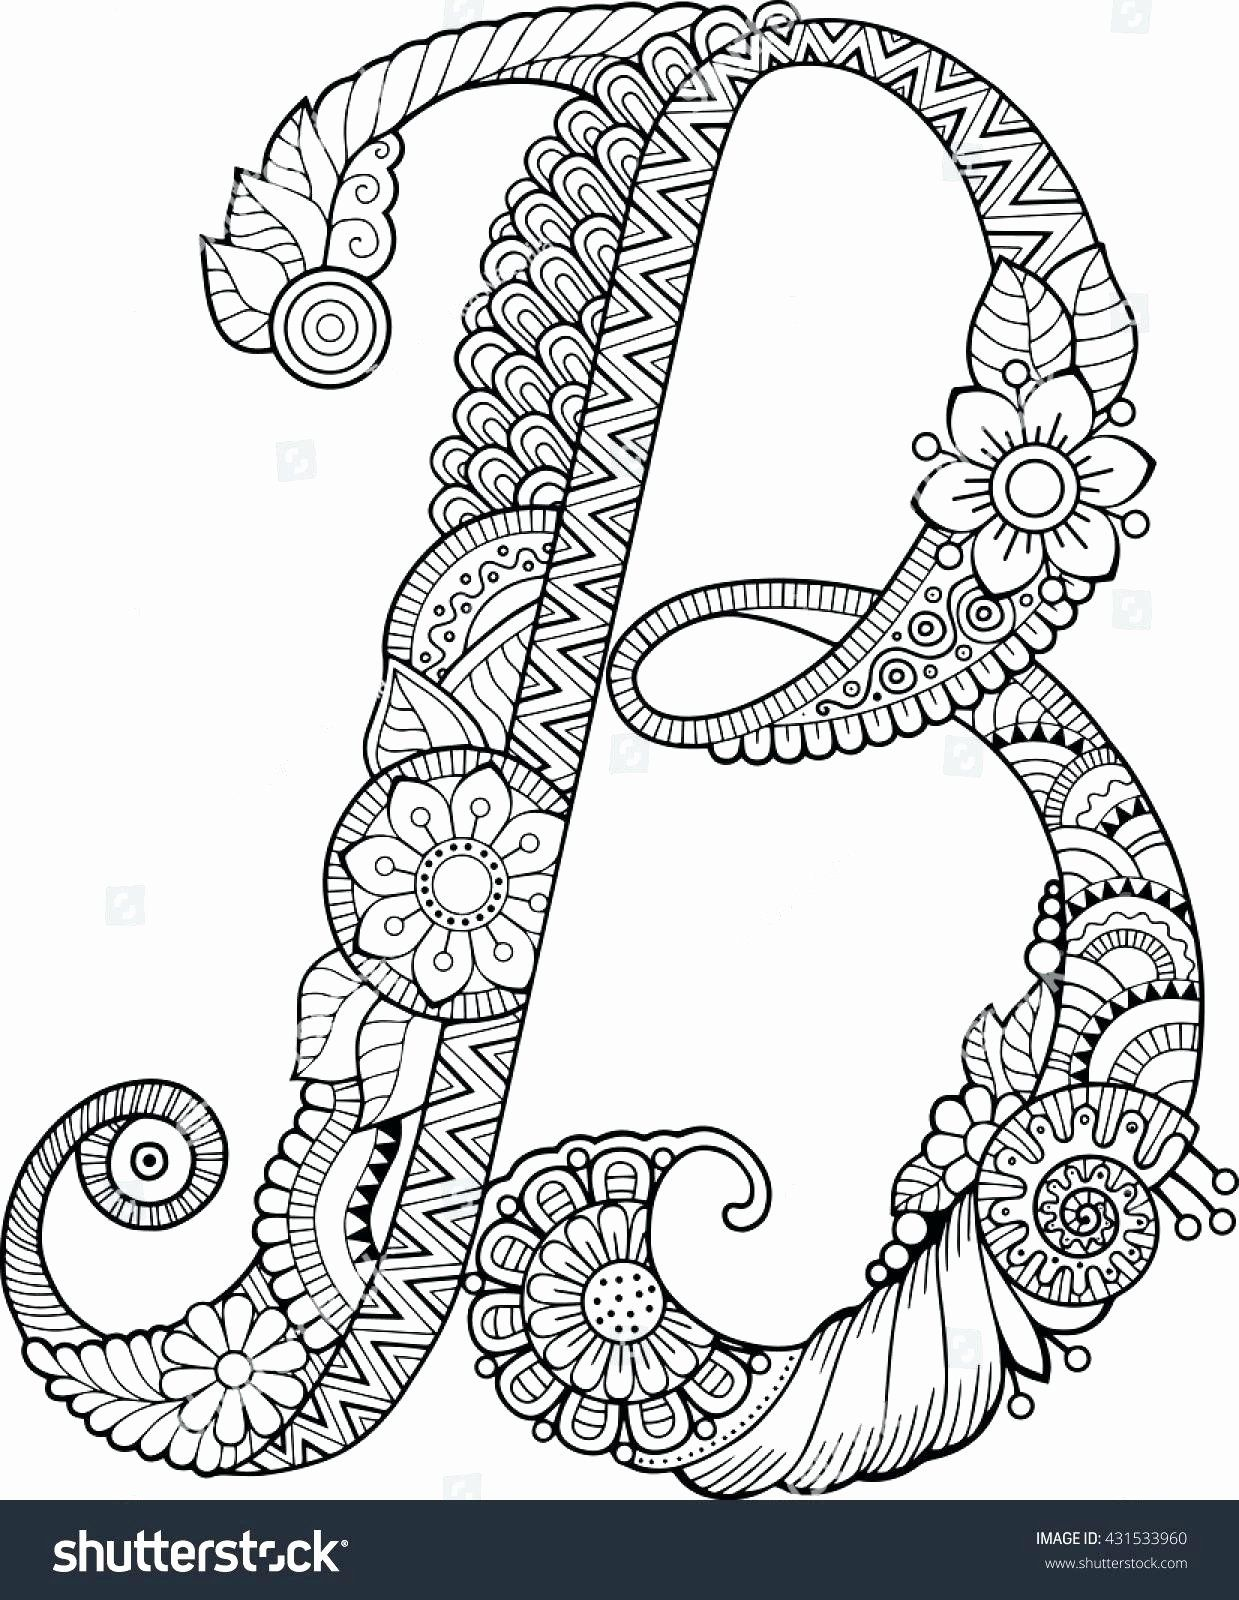 Coloring Pages Animal Doodle Awesome Coloring Pages Letters Amicuscolor In 2020 Flower Coloring Pages Flower Alphabet Doodle Lettering